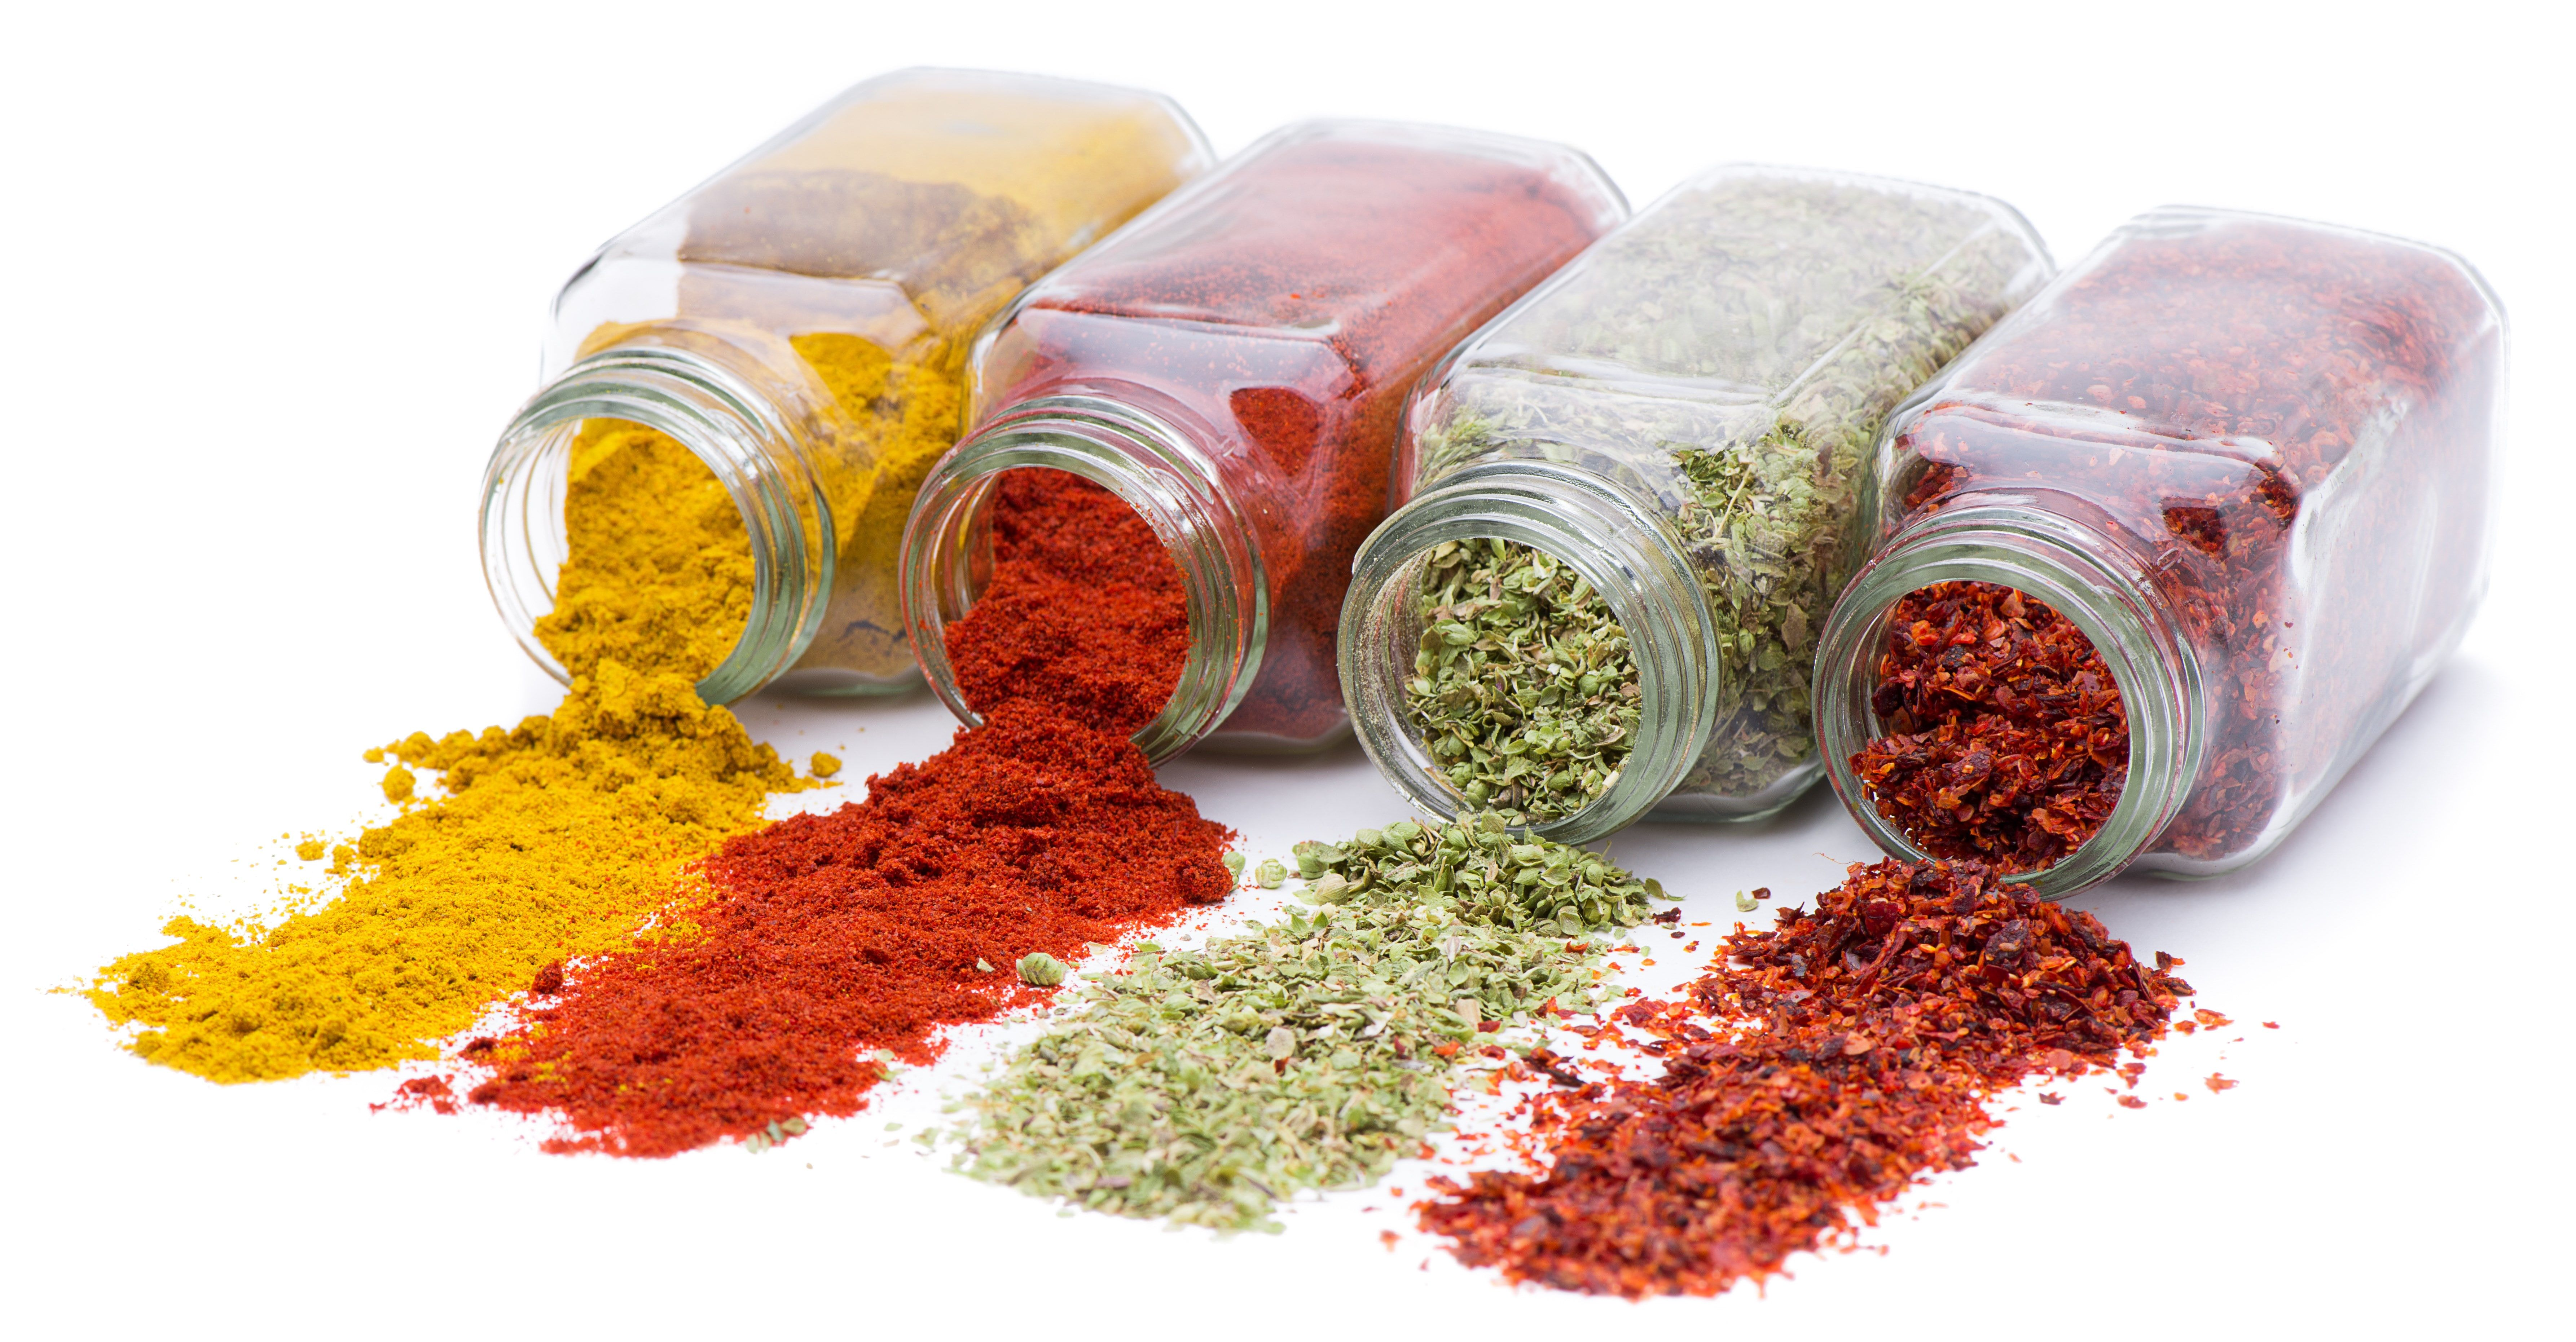 Herbs And Spices 5k Wallpaper Hdwallpaper Desktop Herbs Spices Organic Spice Spice Jars